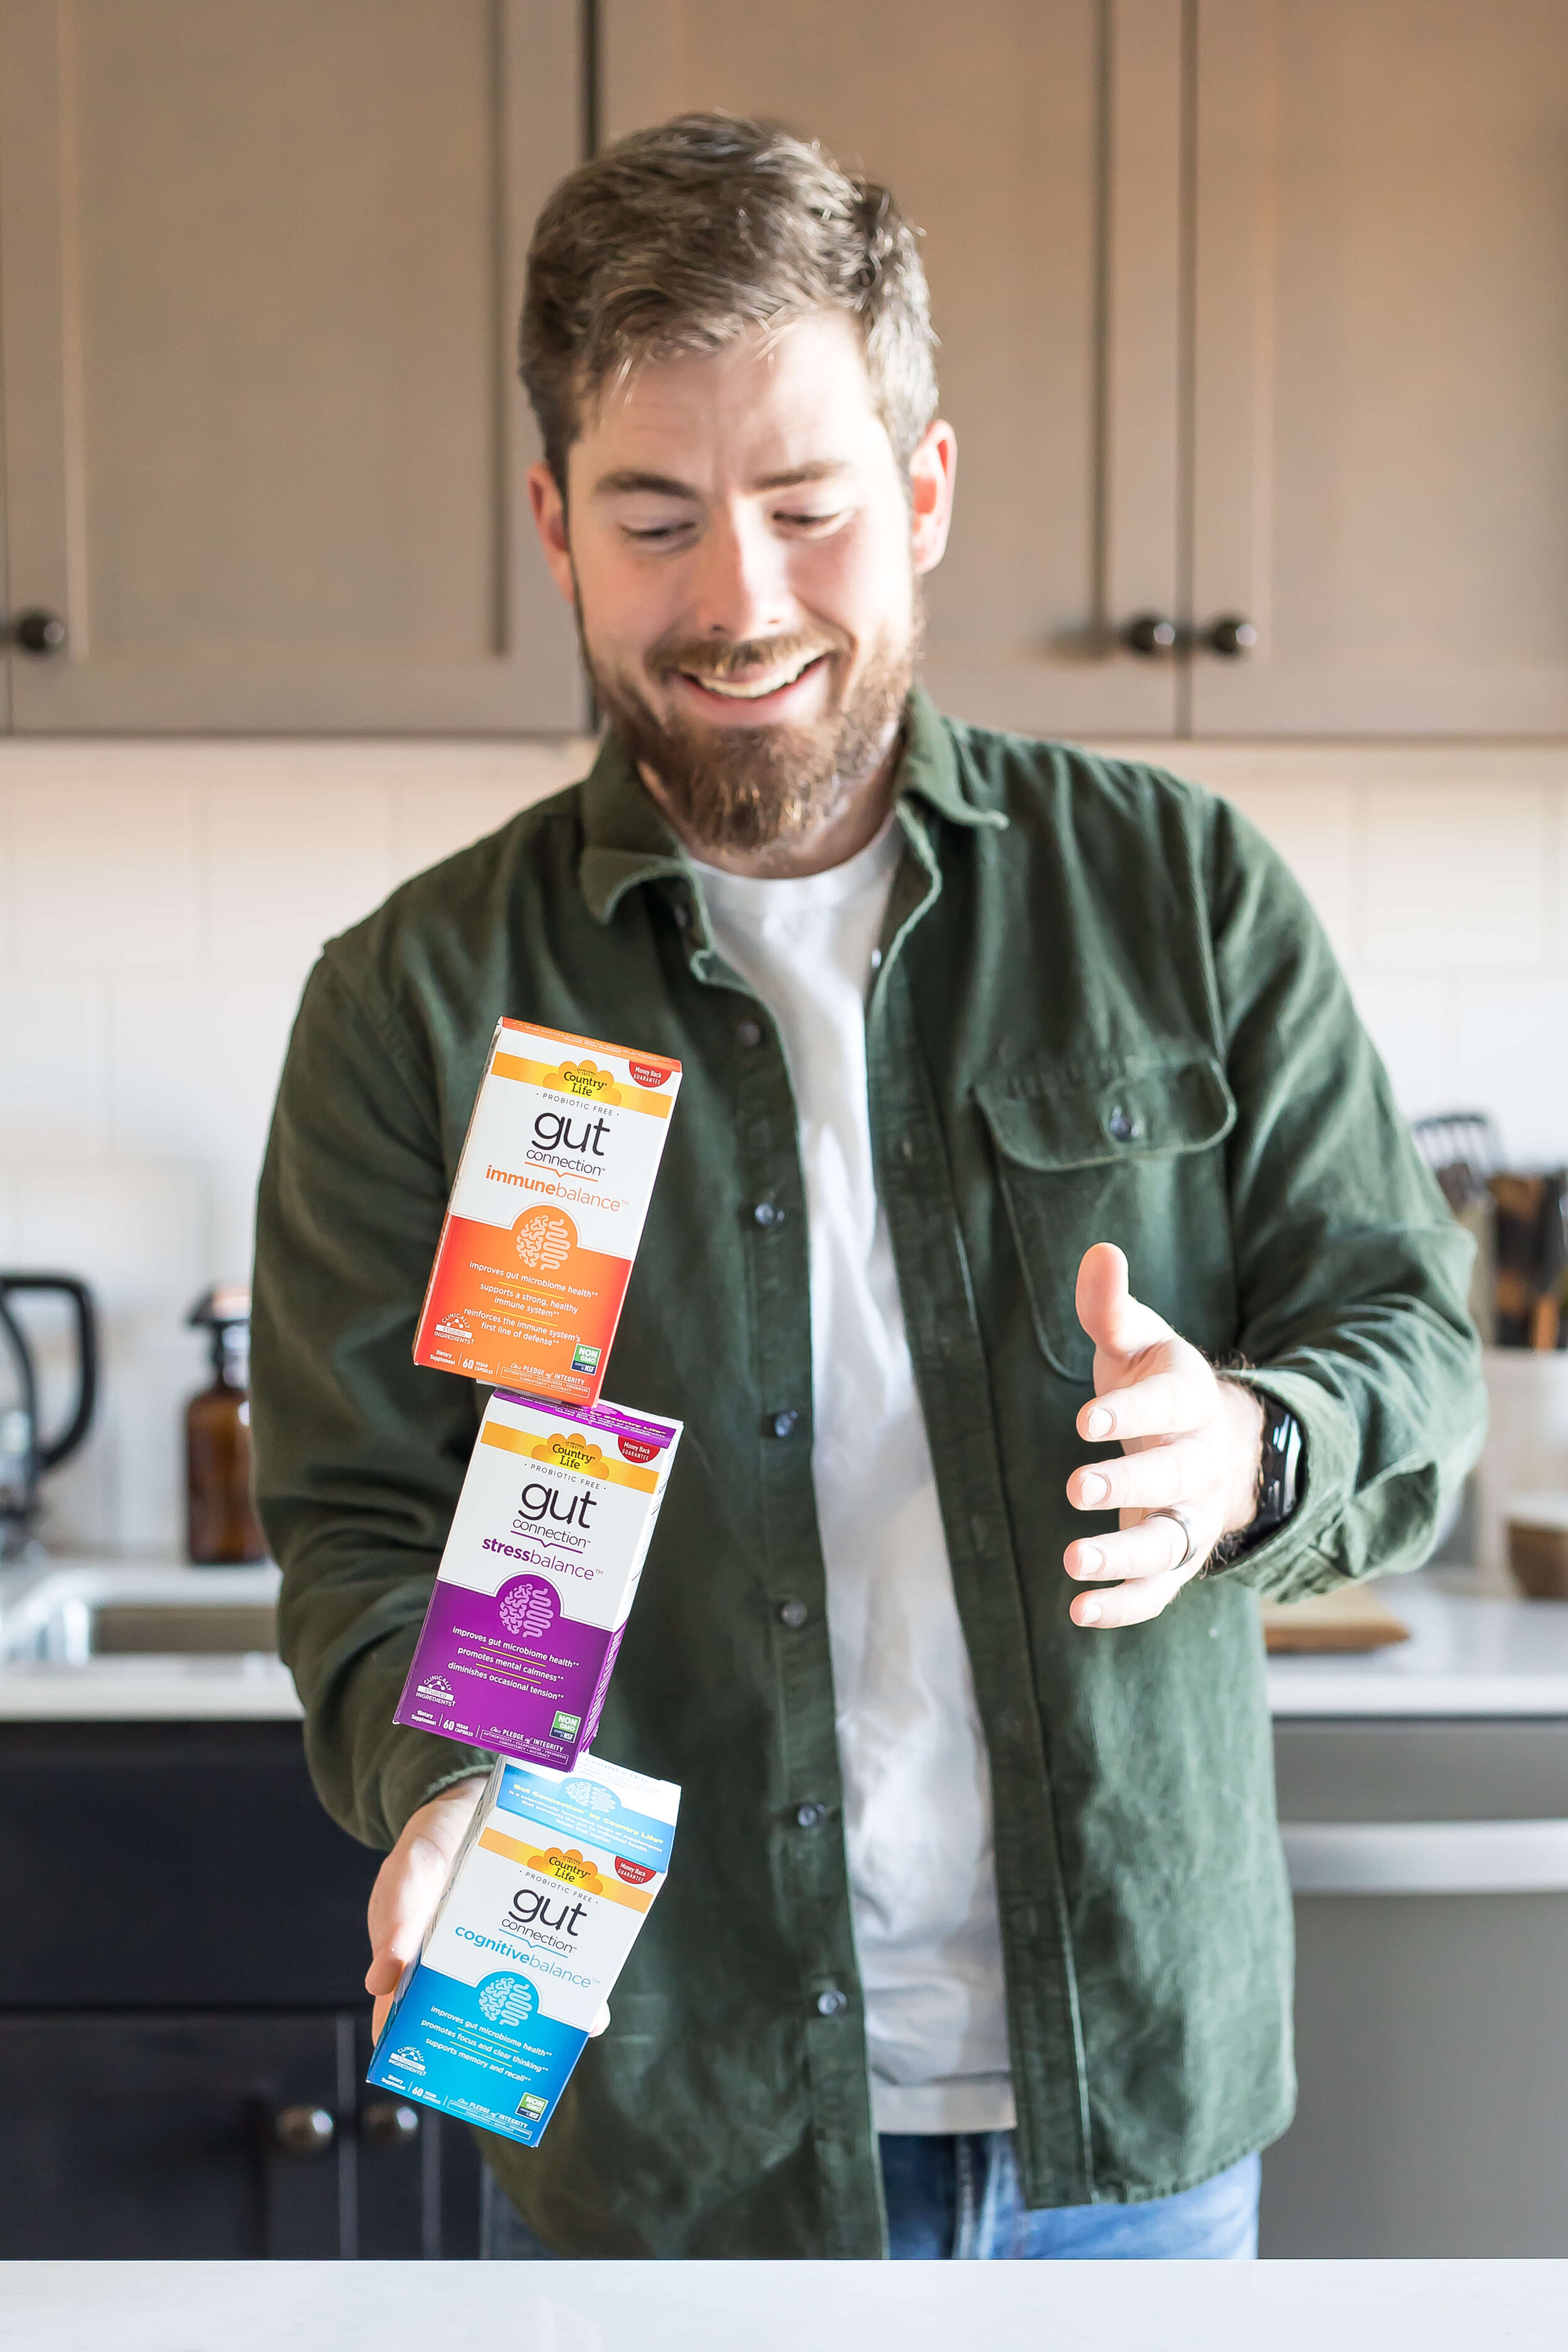 balancing multiple boxes of gut connection supplements